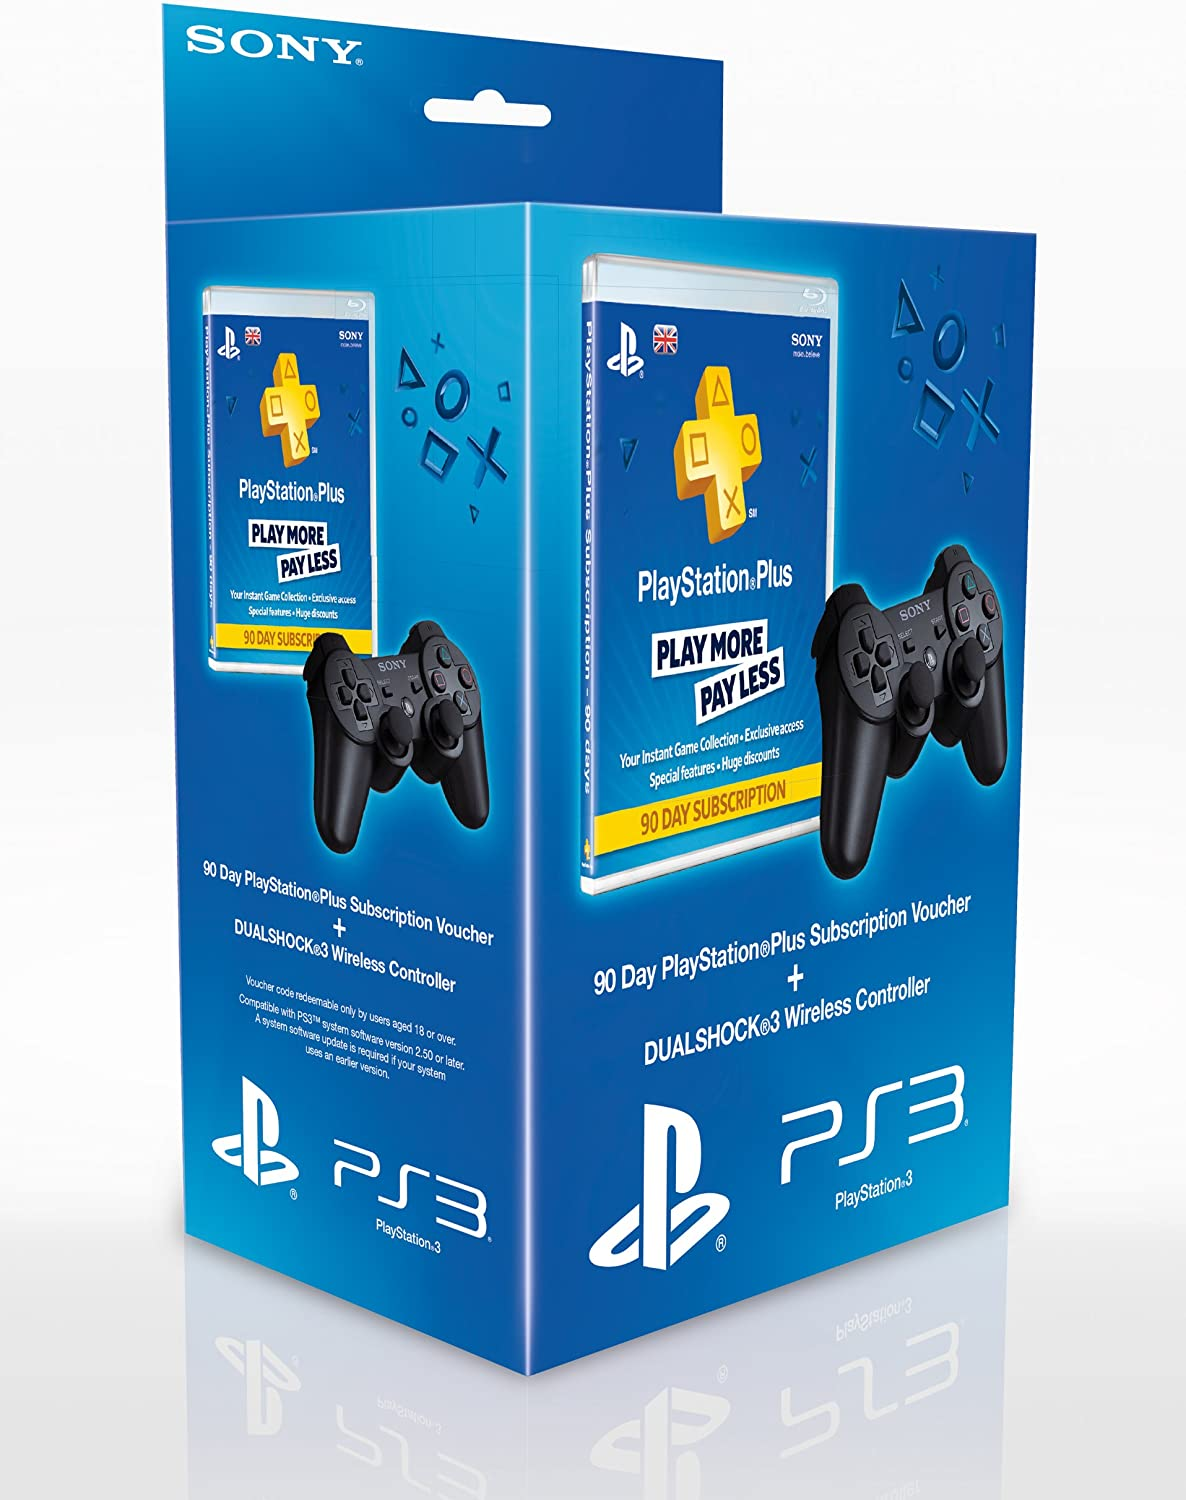 Sony Playstation Dualshock 3 Controller And 90 Day PS Plus Voucher ...